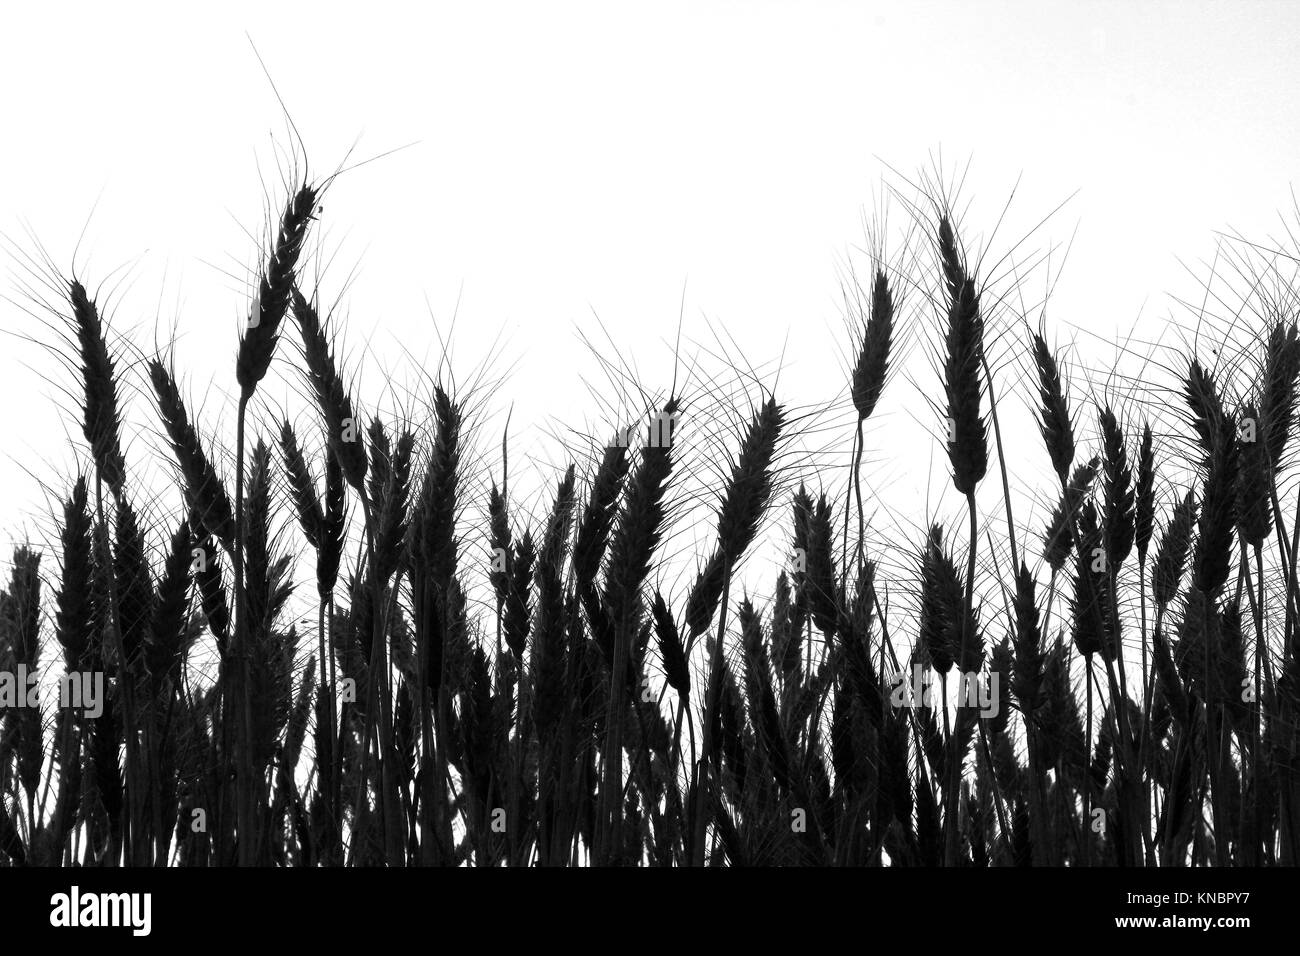 wheat field ,black and white, silhouette,. - Stock Image